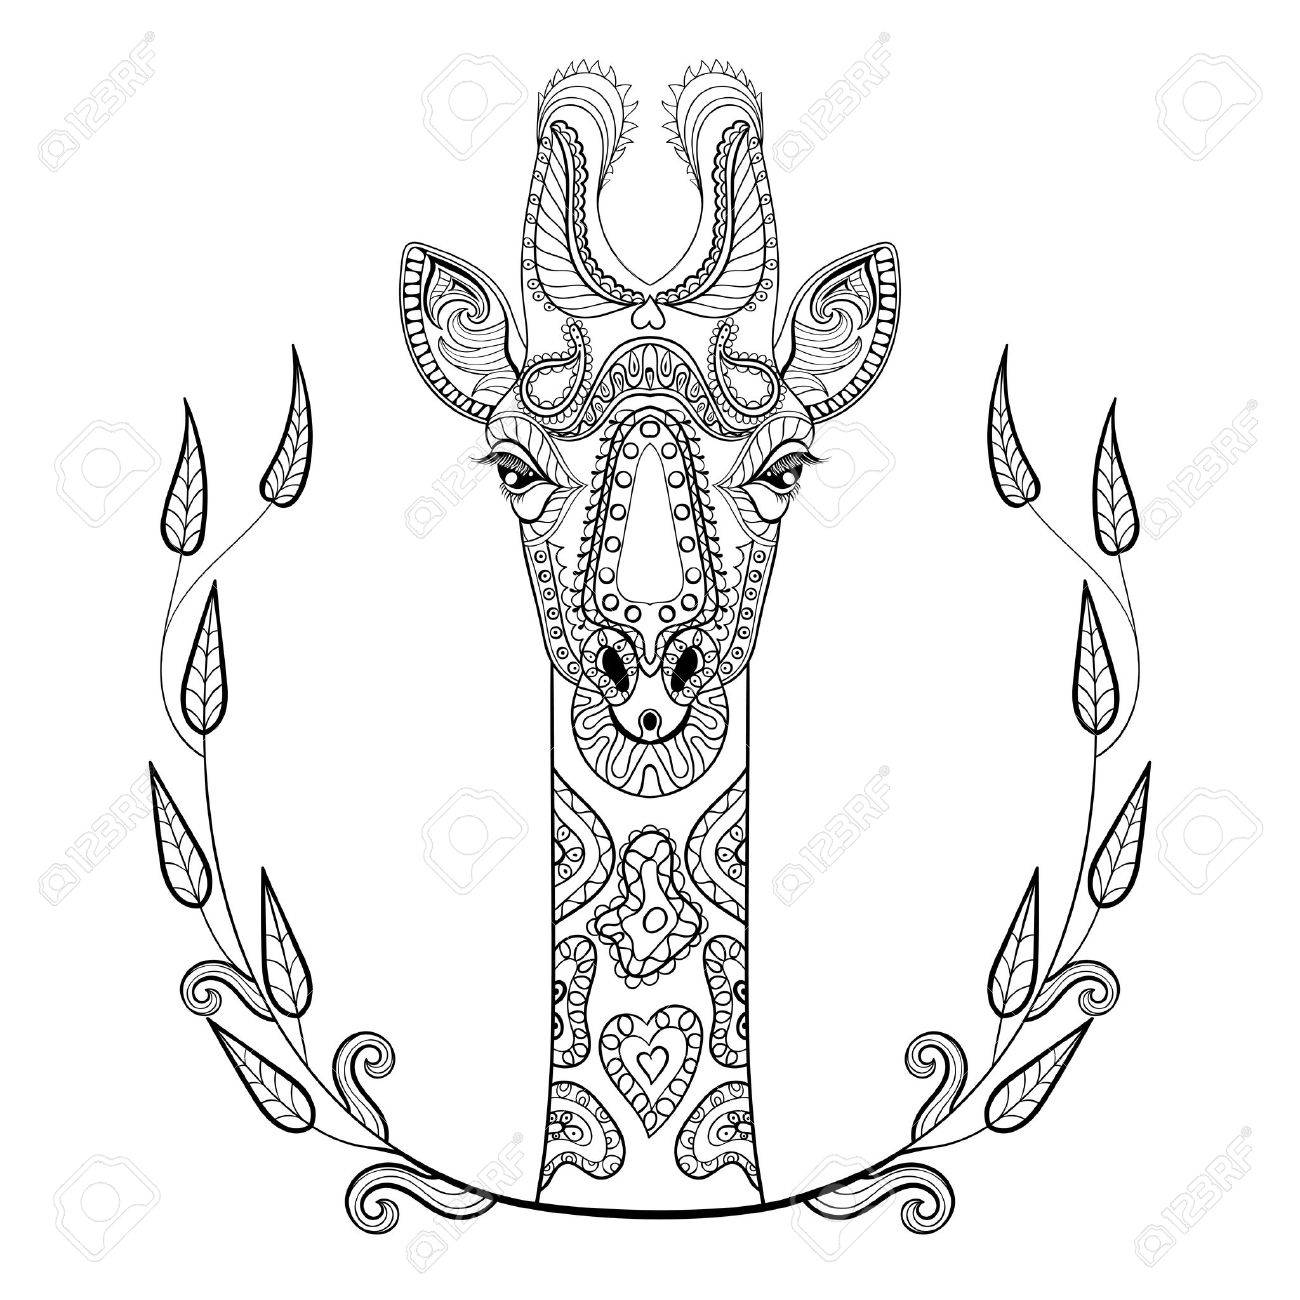 Coloring pages for adults giraffe - Zentangle Giraffe Head Totem In Frame For Adult Anti Stress Coloring Page For Art Therapy